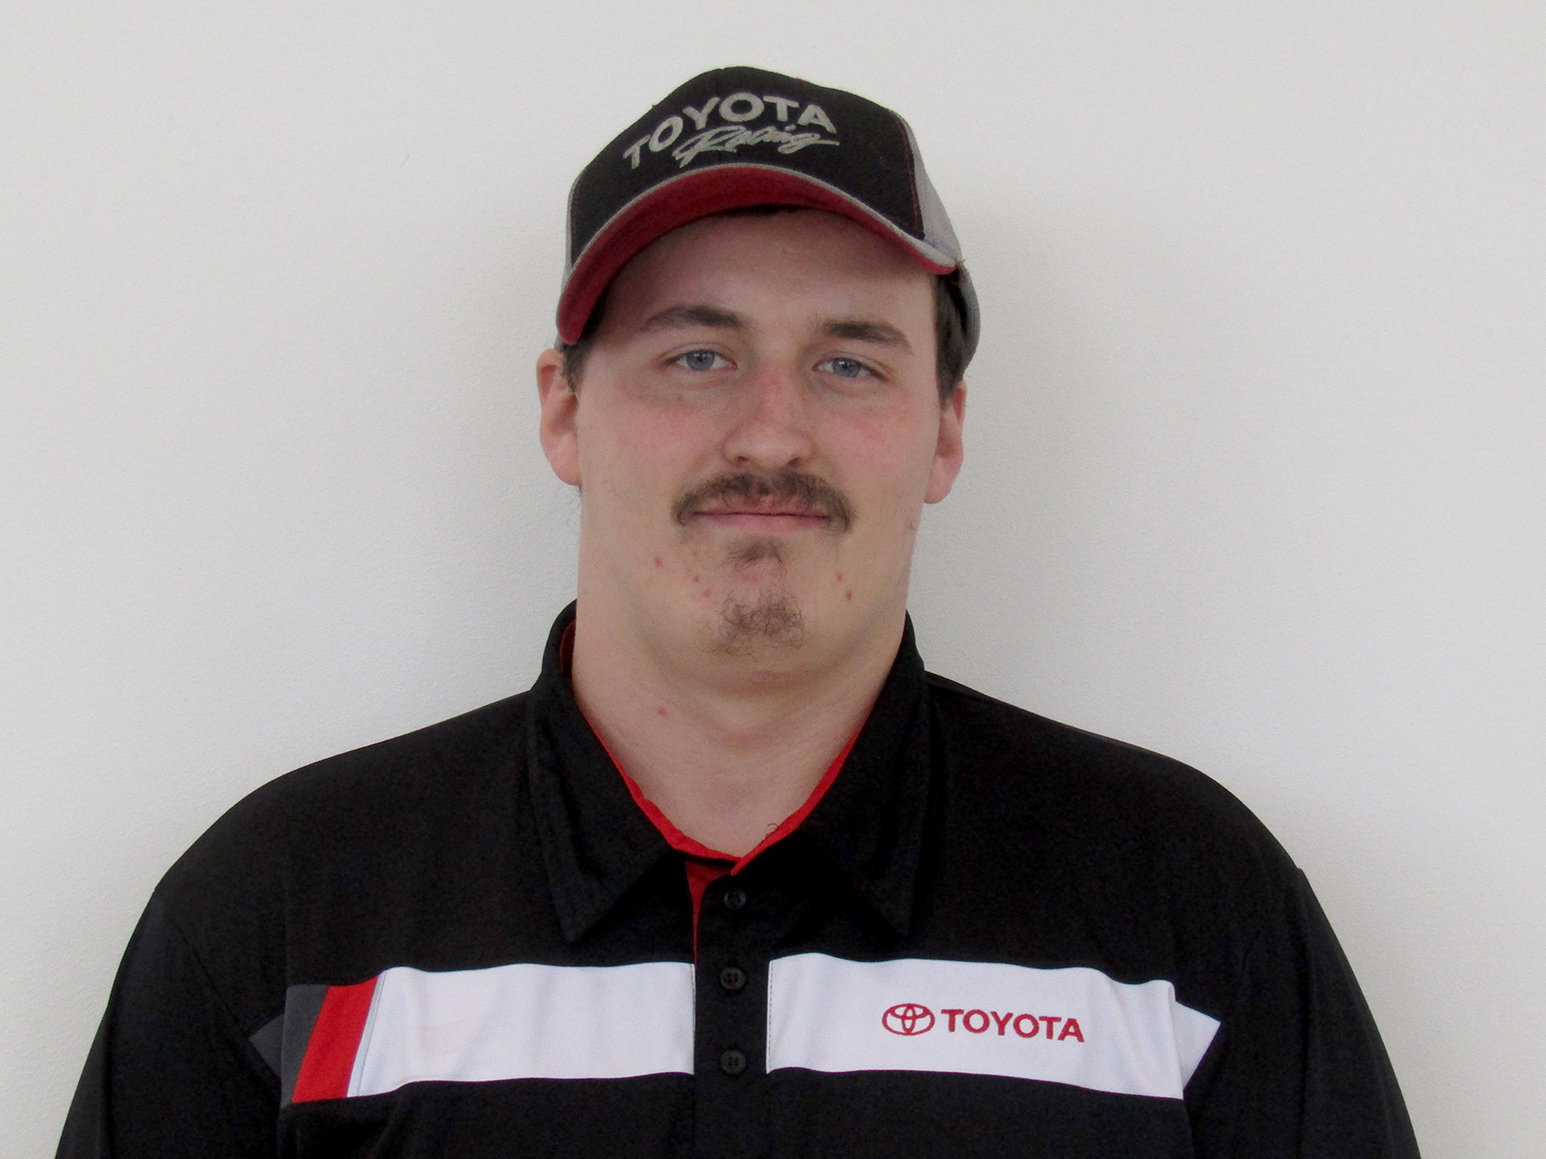 RJ Smith - Assistant Service Manager